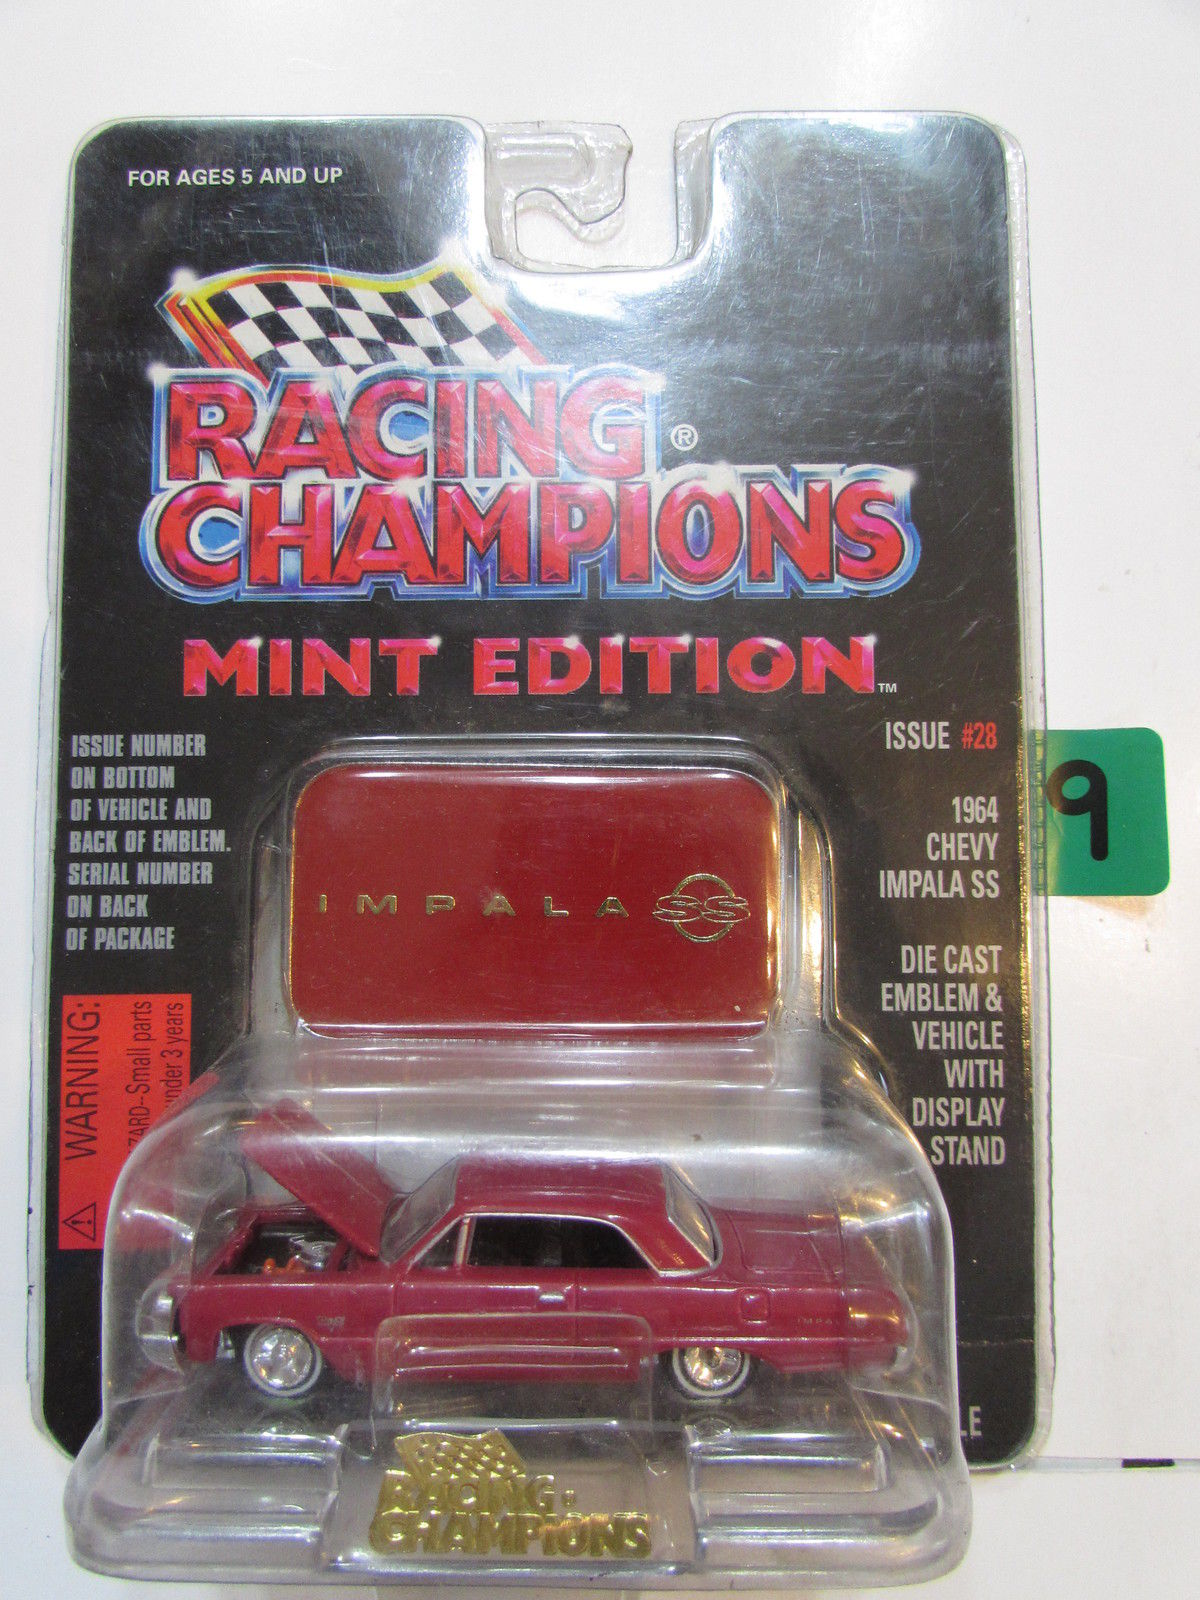 RACING CHAMPIONS MINT EDITION #28 1964 CHEVY IMPALA SS 1:63 SCALE